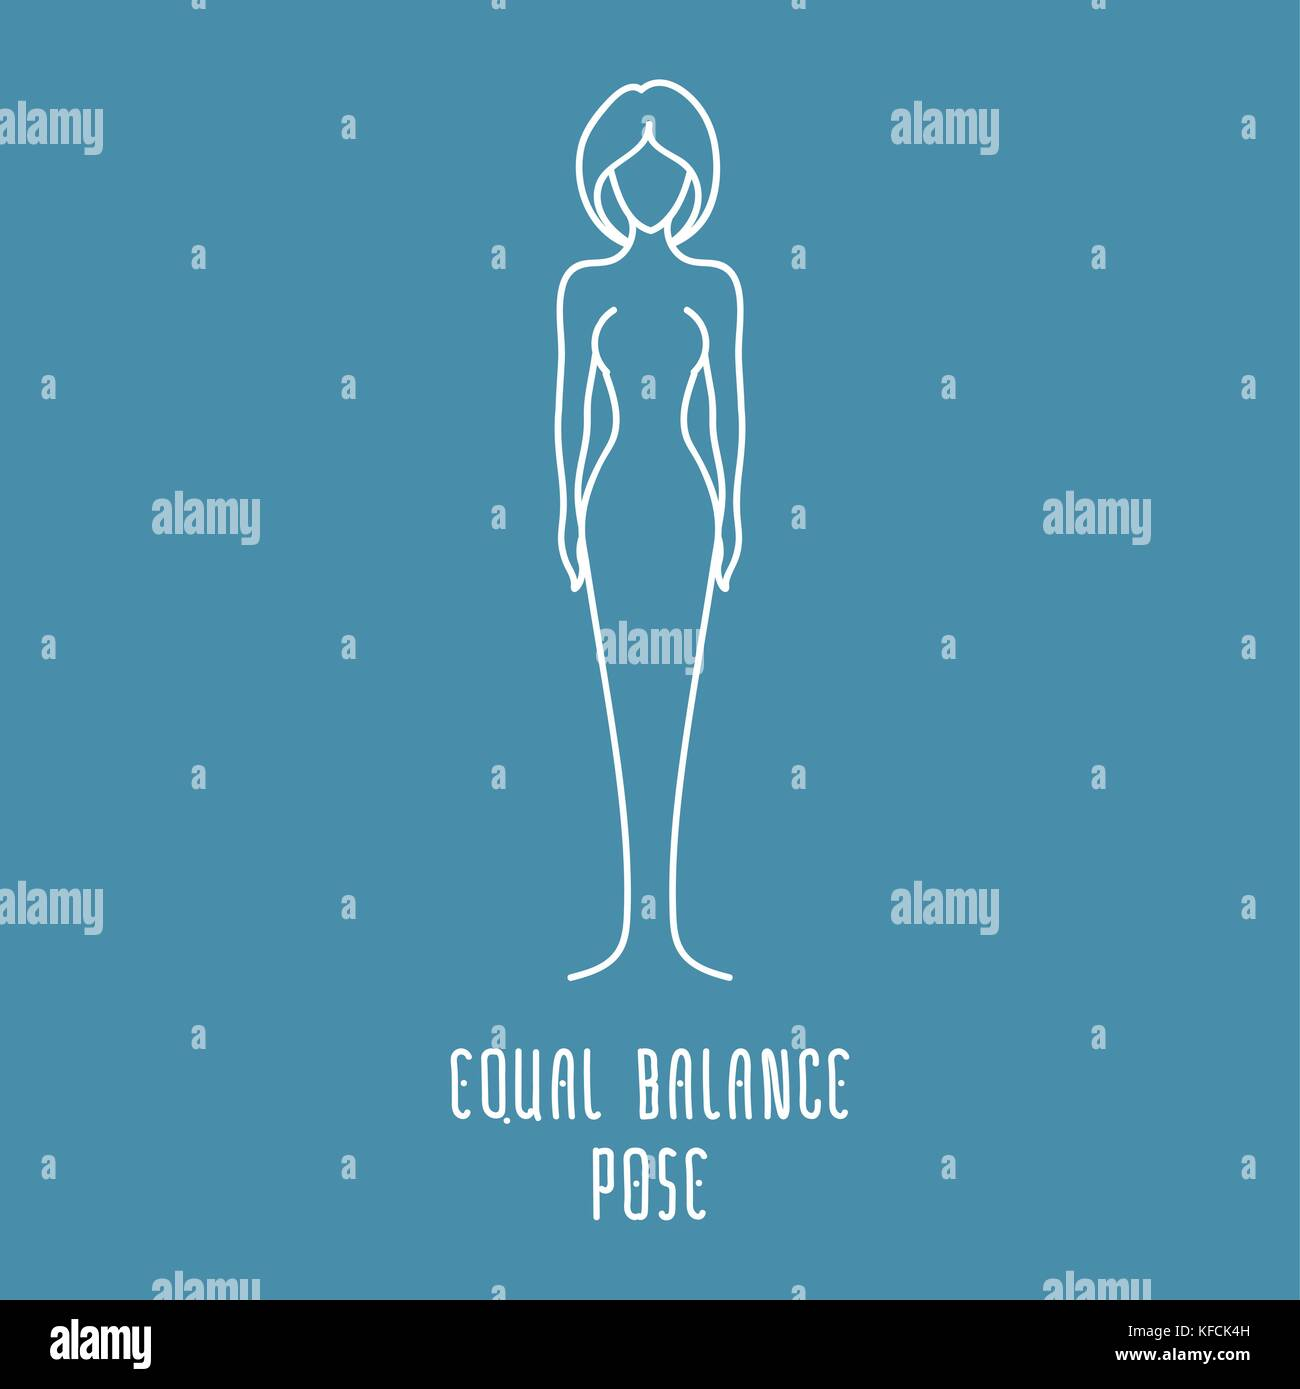 Yoga pose flat line icon, simple sign of woman in equal balance